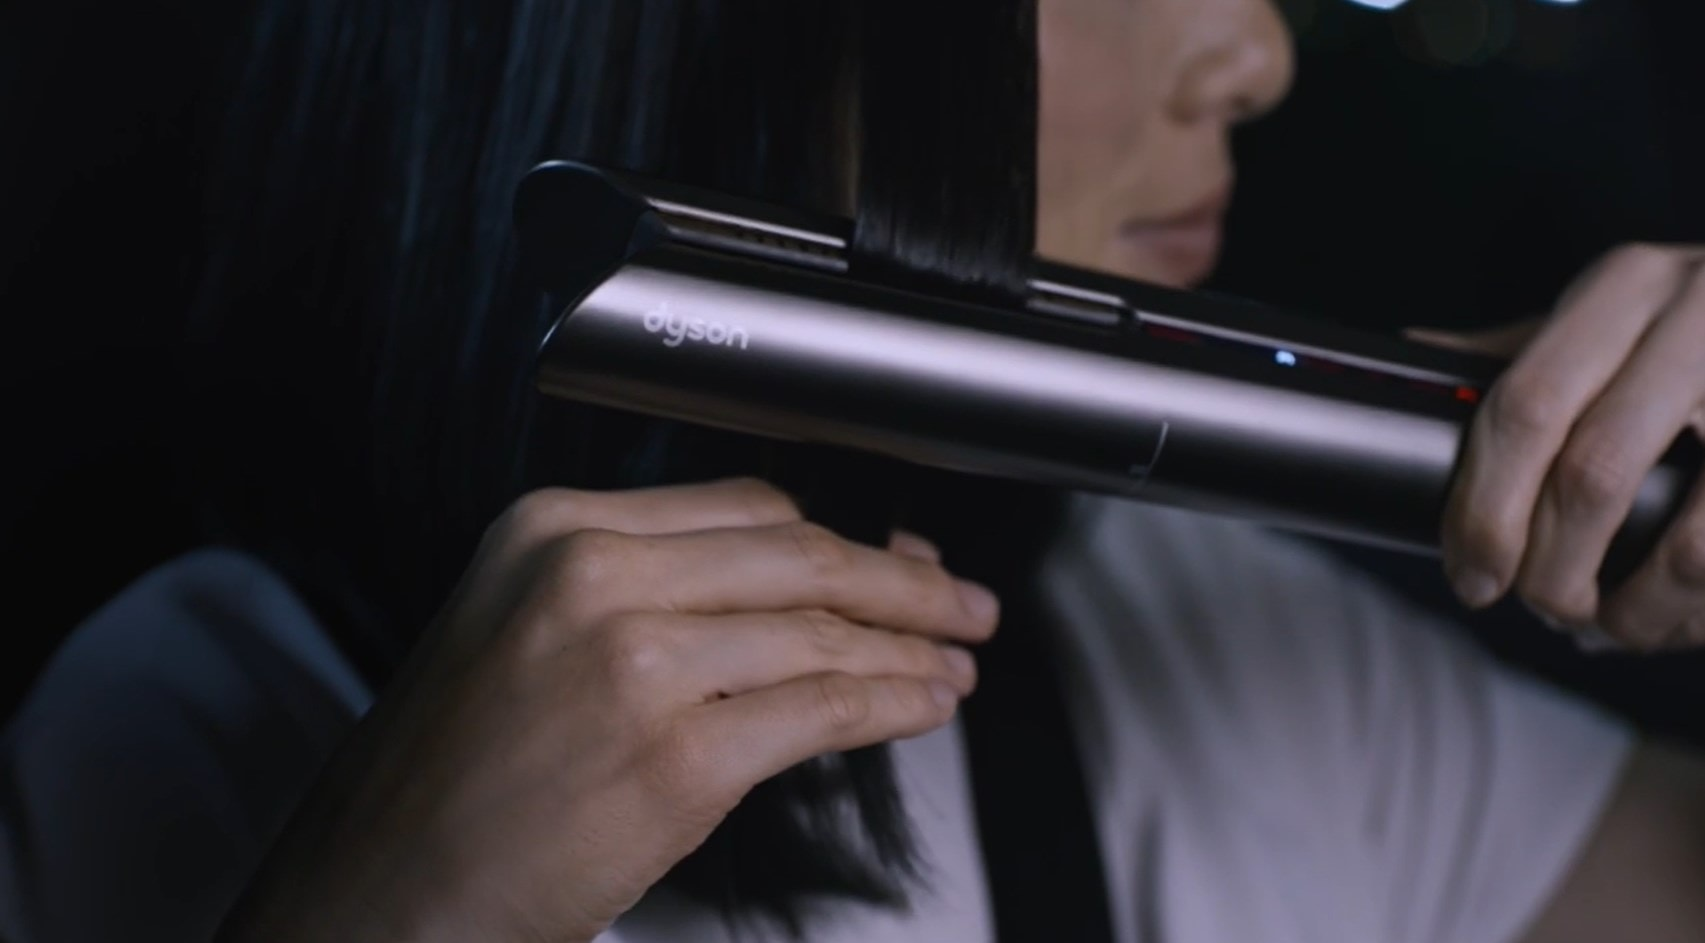 Dyson's new product offers another treat for the hair